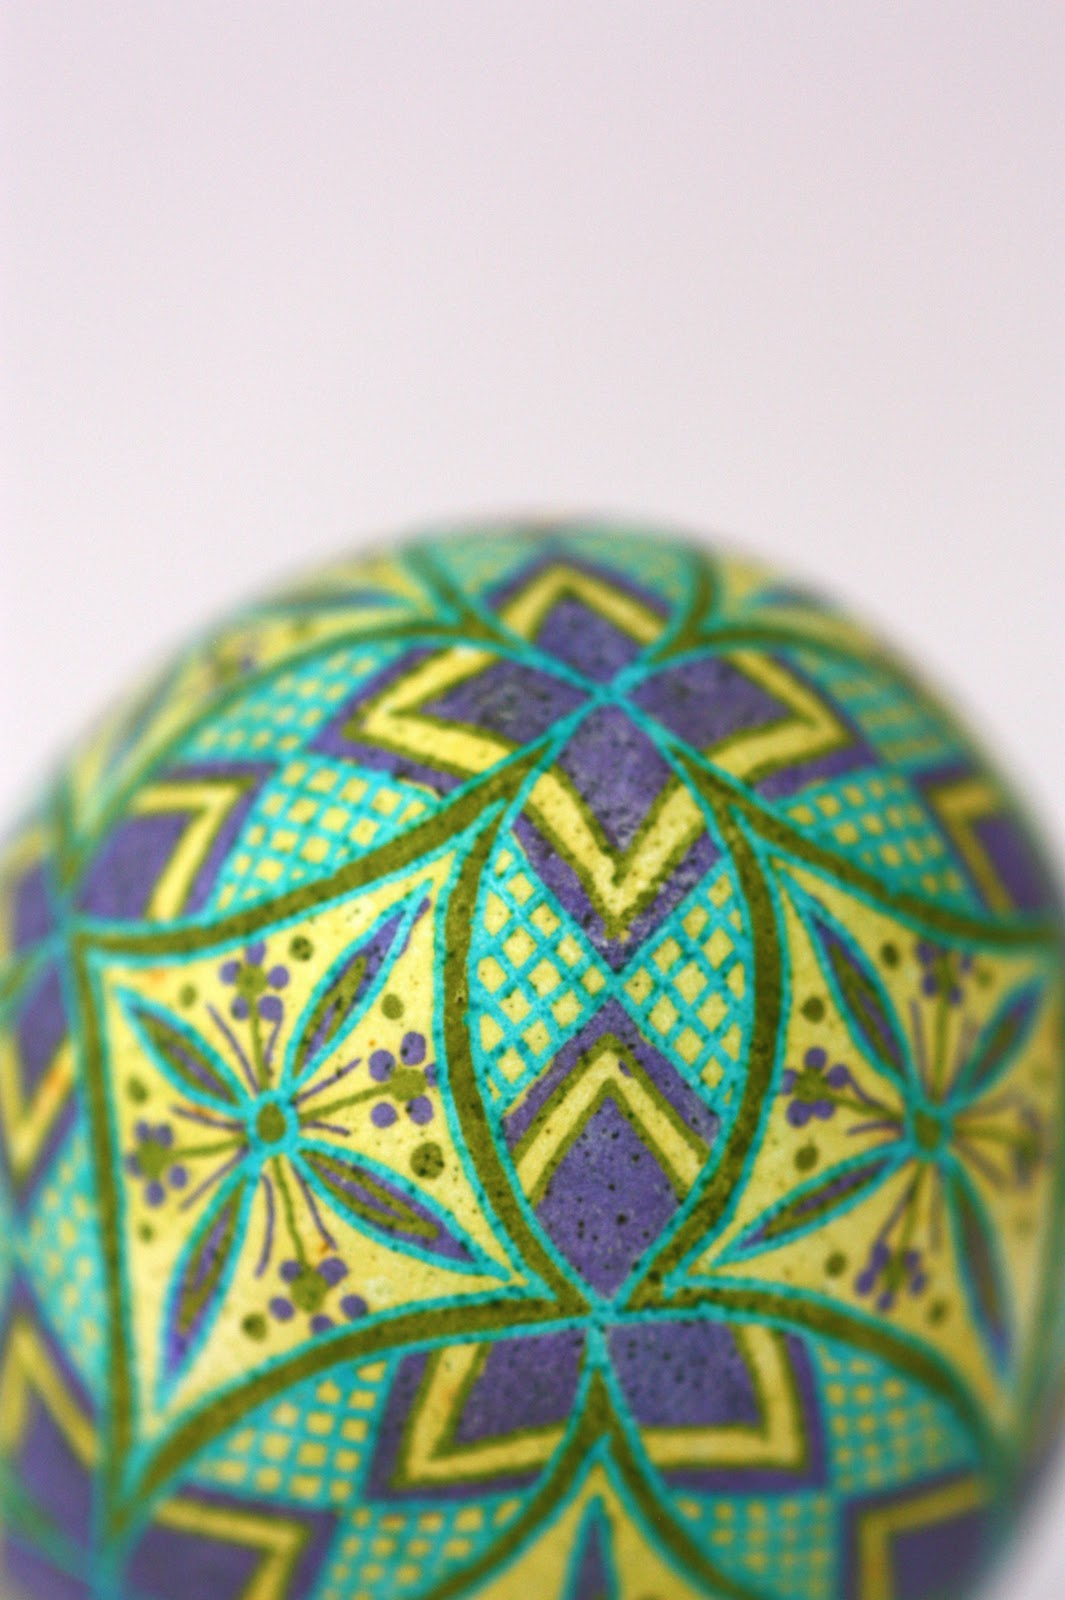 Pysanky Easter Egg with round geometrics in purple, yellow, green and blue